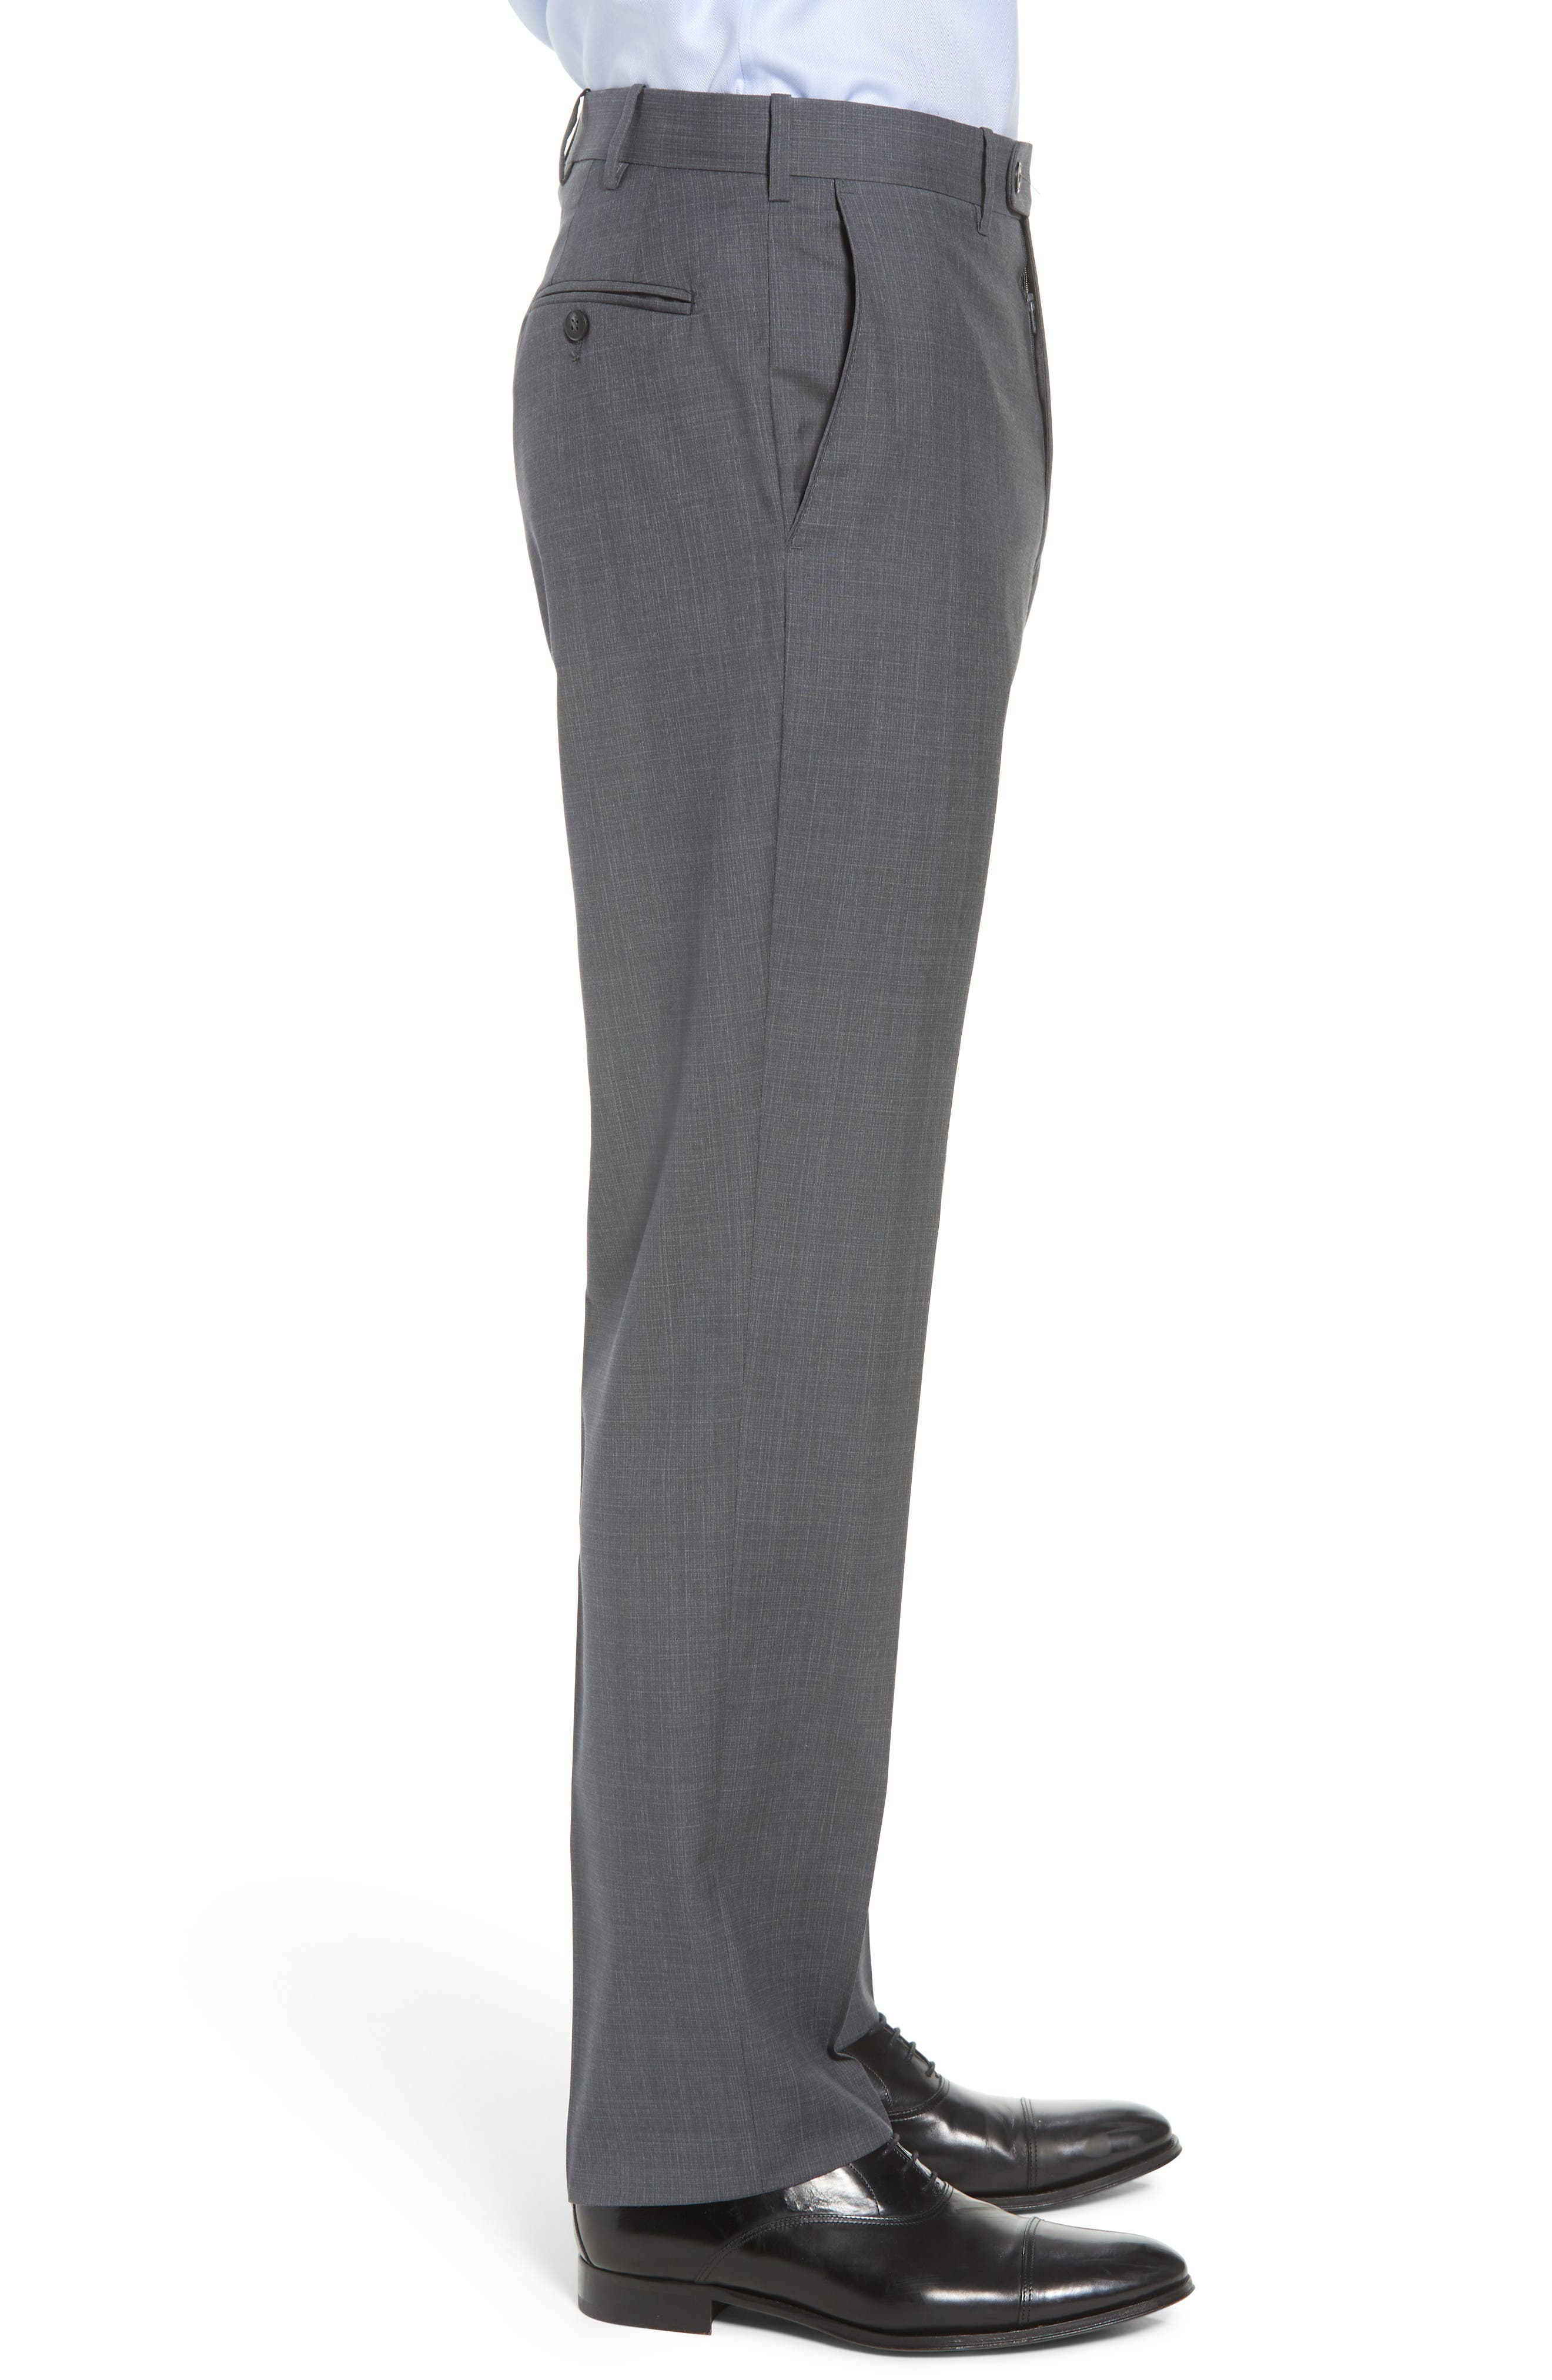 Torino Traditional Fit Flat Front Plaid Wool Trousers,                             Alternate thumbnail 3, color,                             GREY